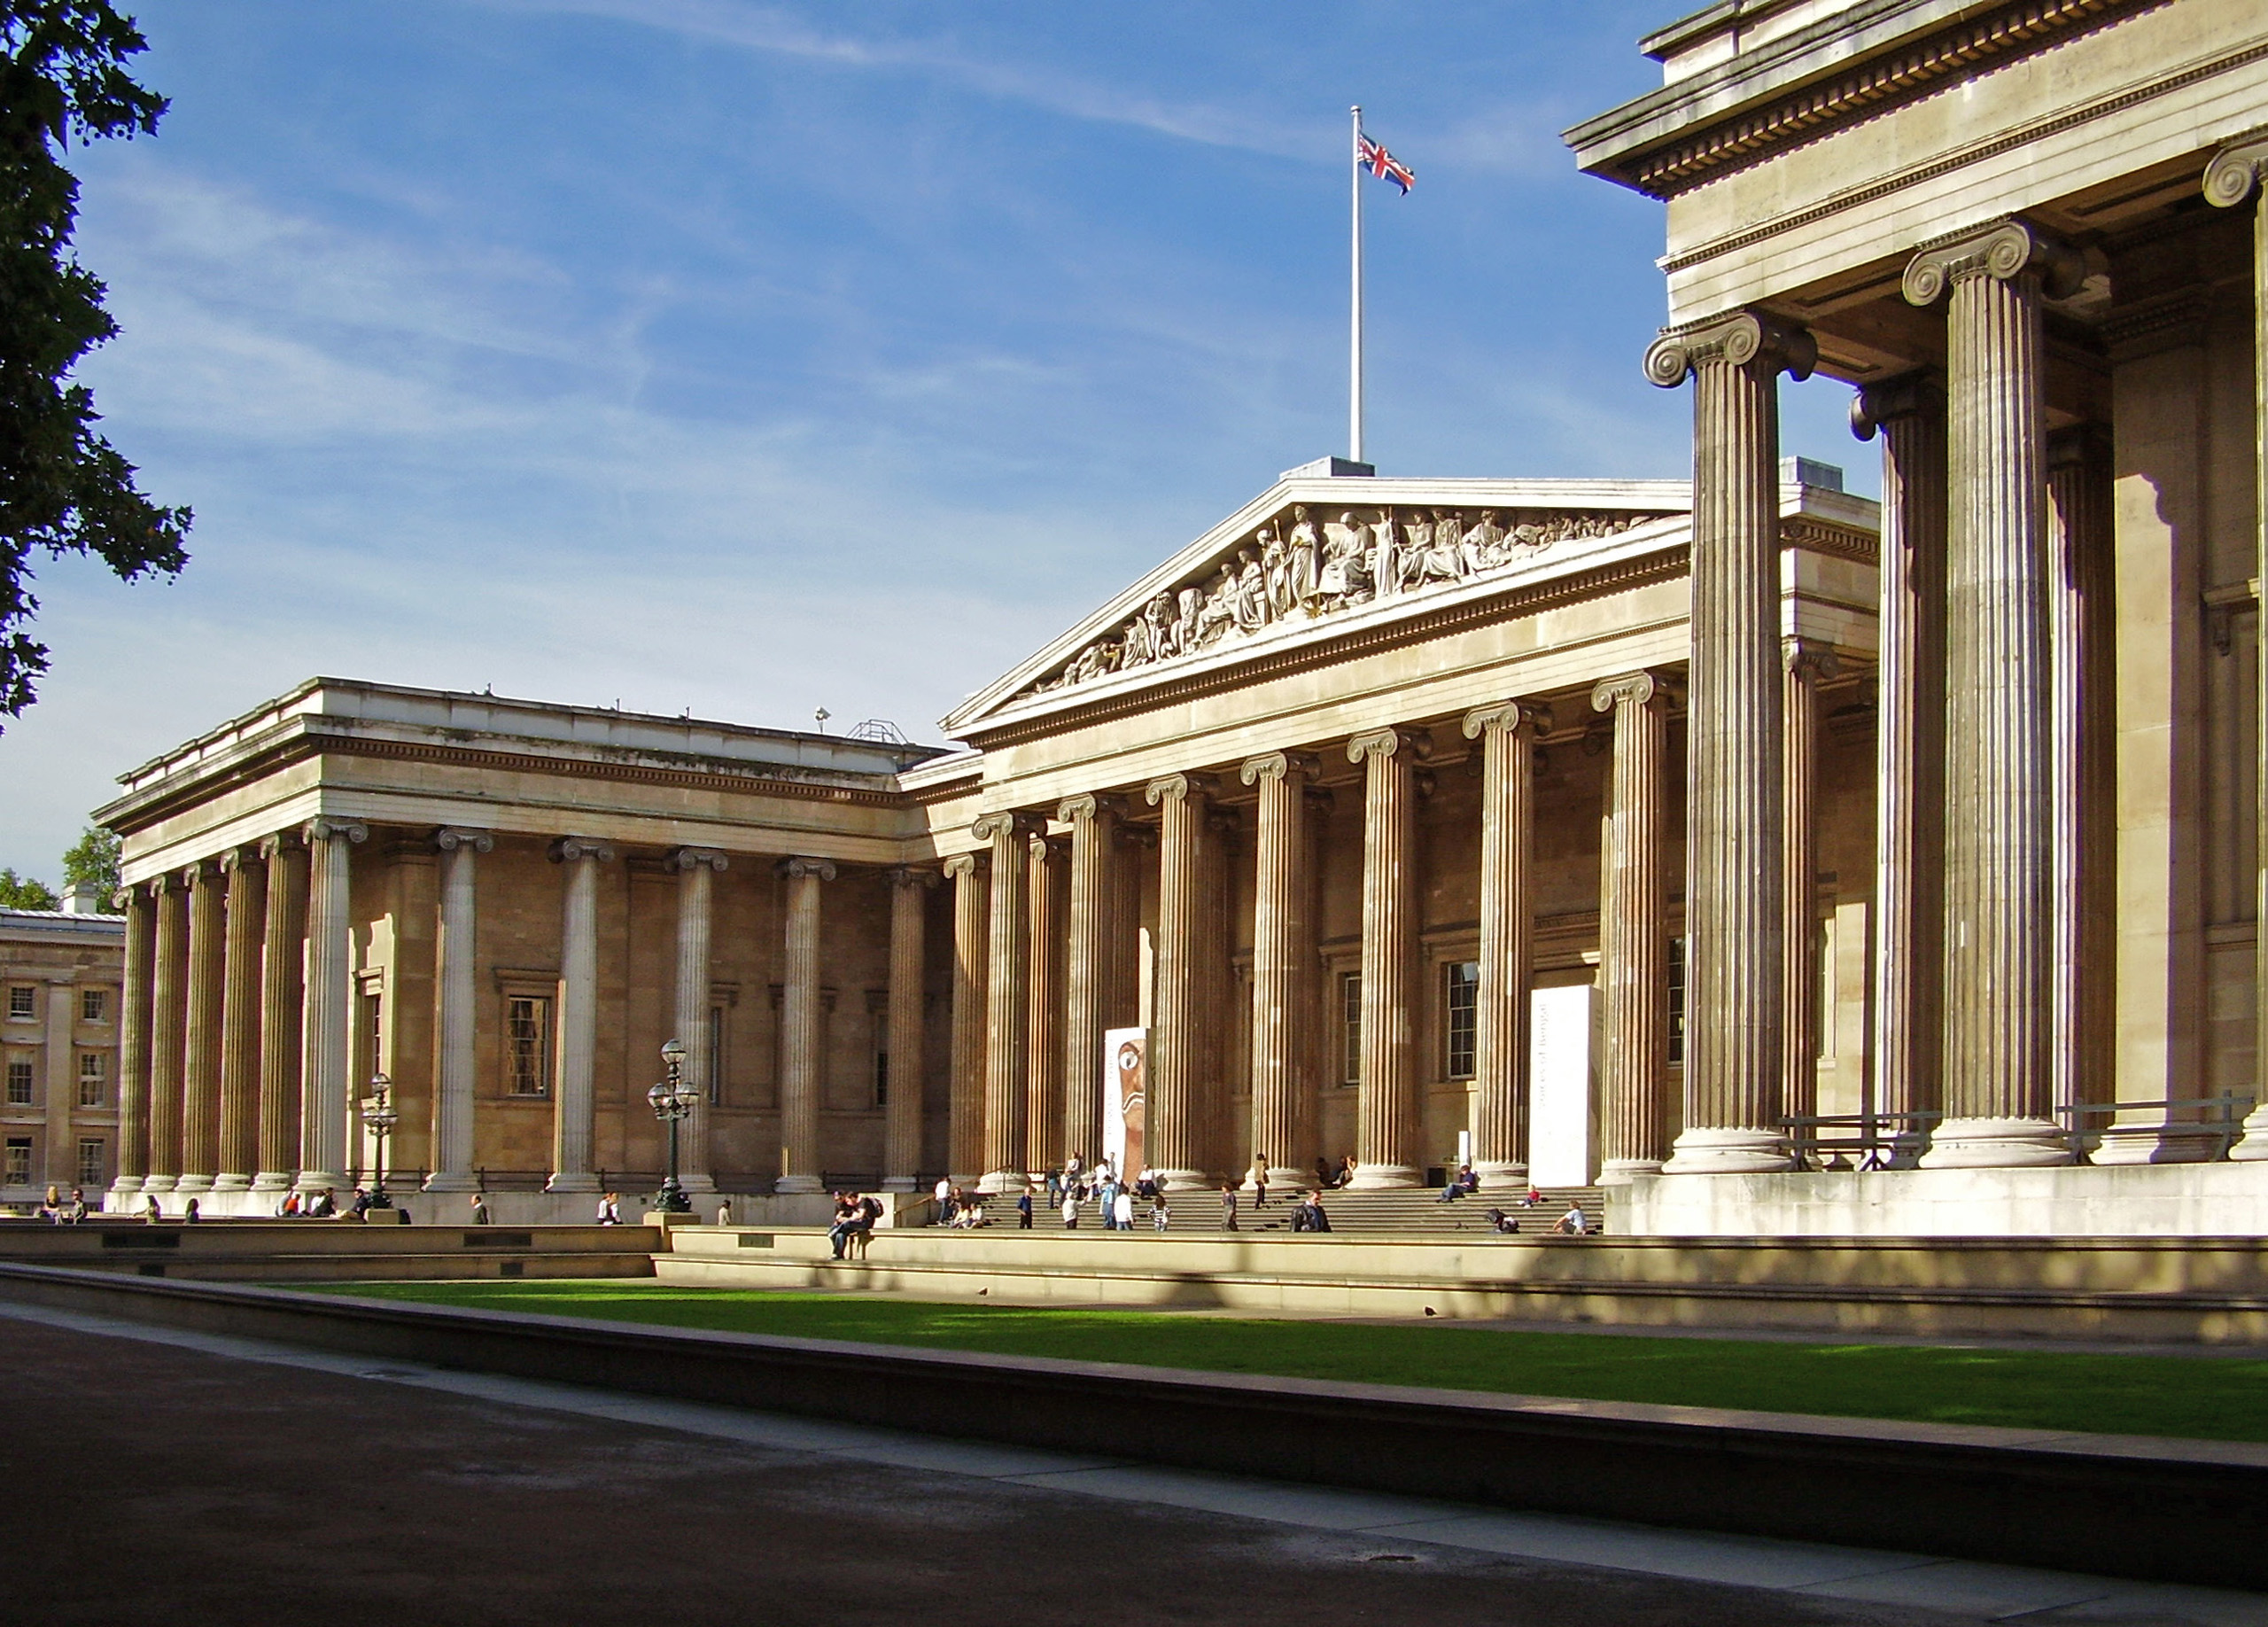 British Museum London, Catalog of Humanity: 10 Interesting Facts and Figures about the ...